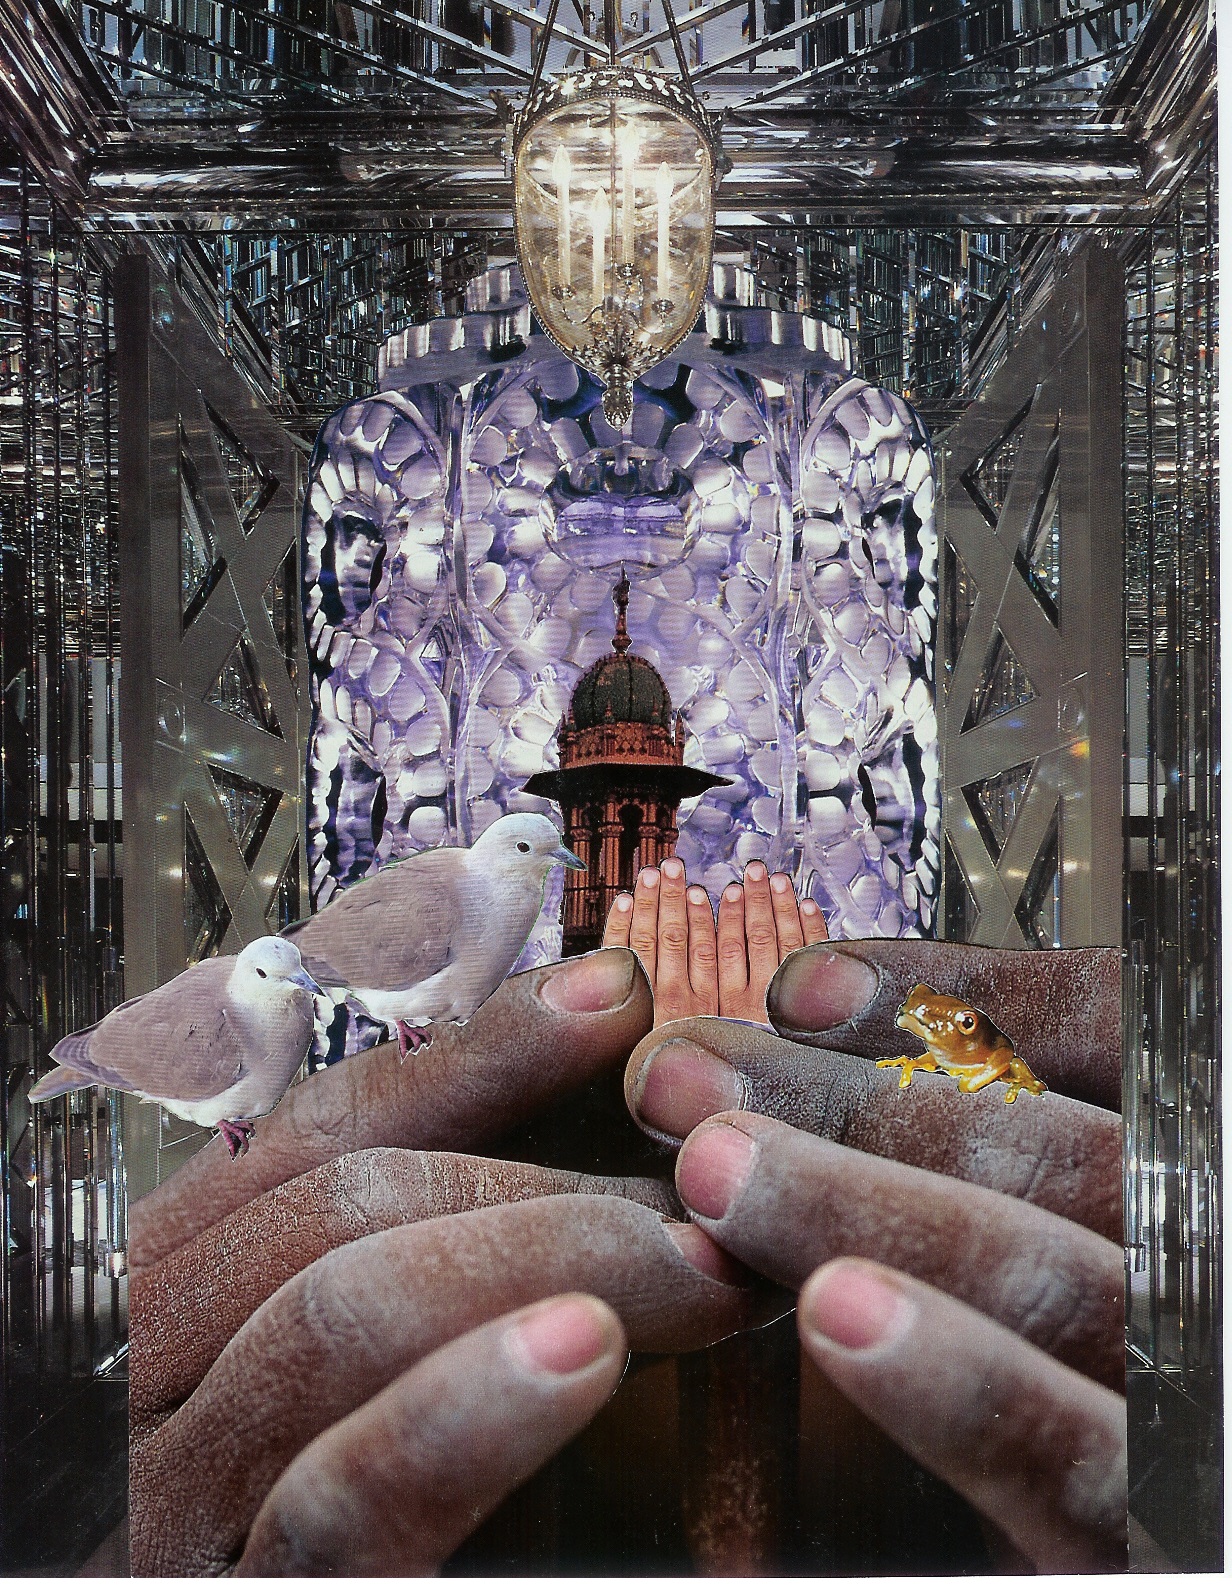 salt-prayers-collage